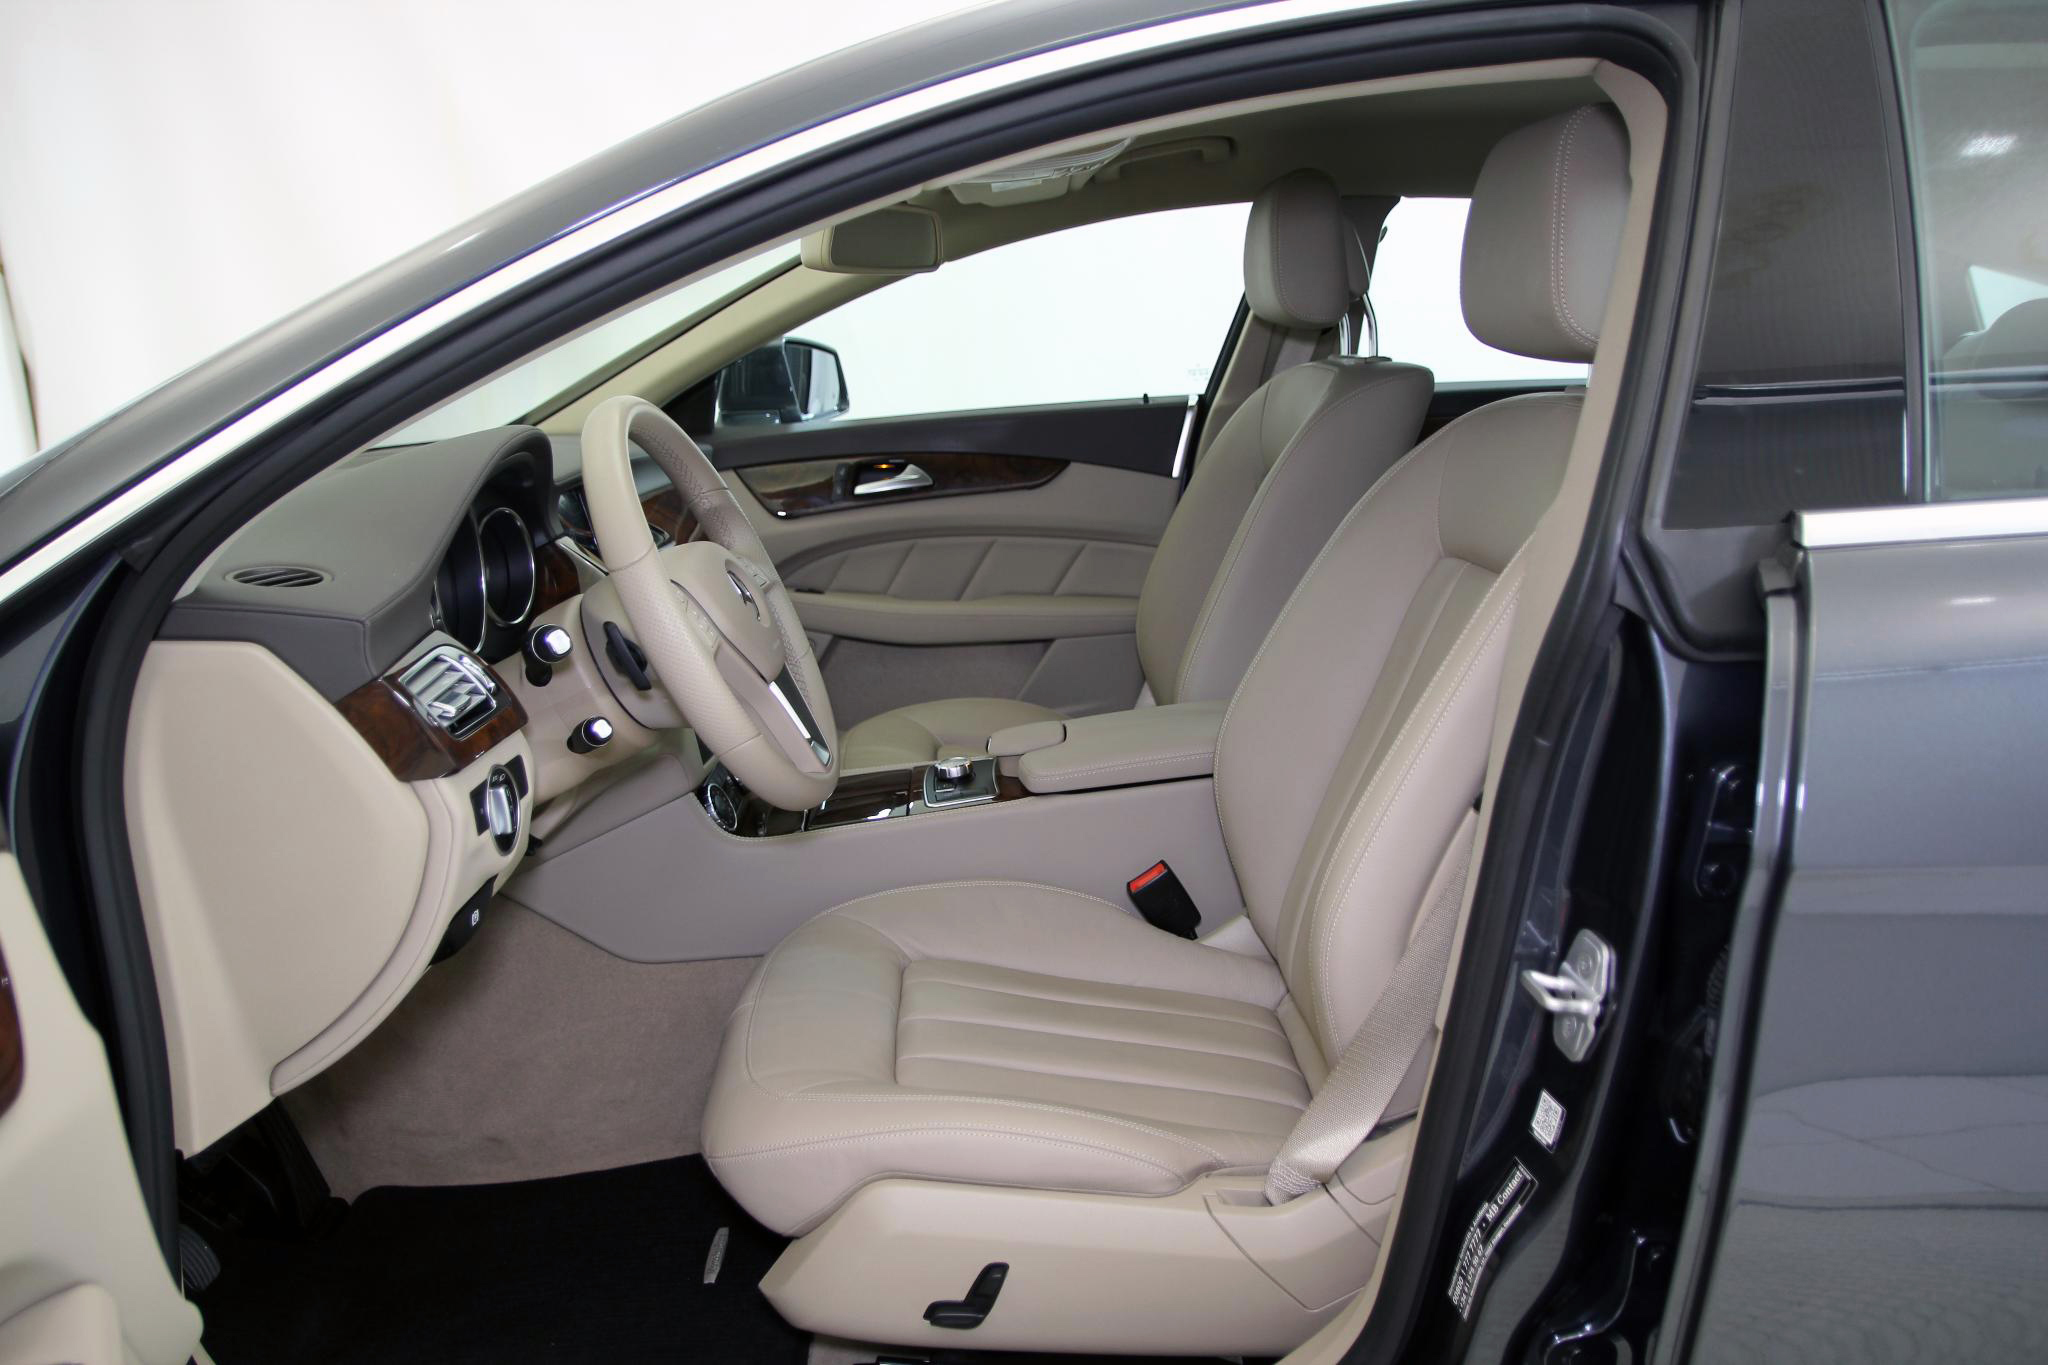 Mercedes-Benz Clase CLS CLS SHOOTING BRAKE 350 CDI AUTO imagen 15